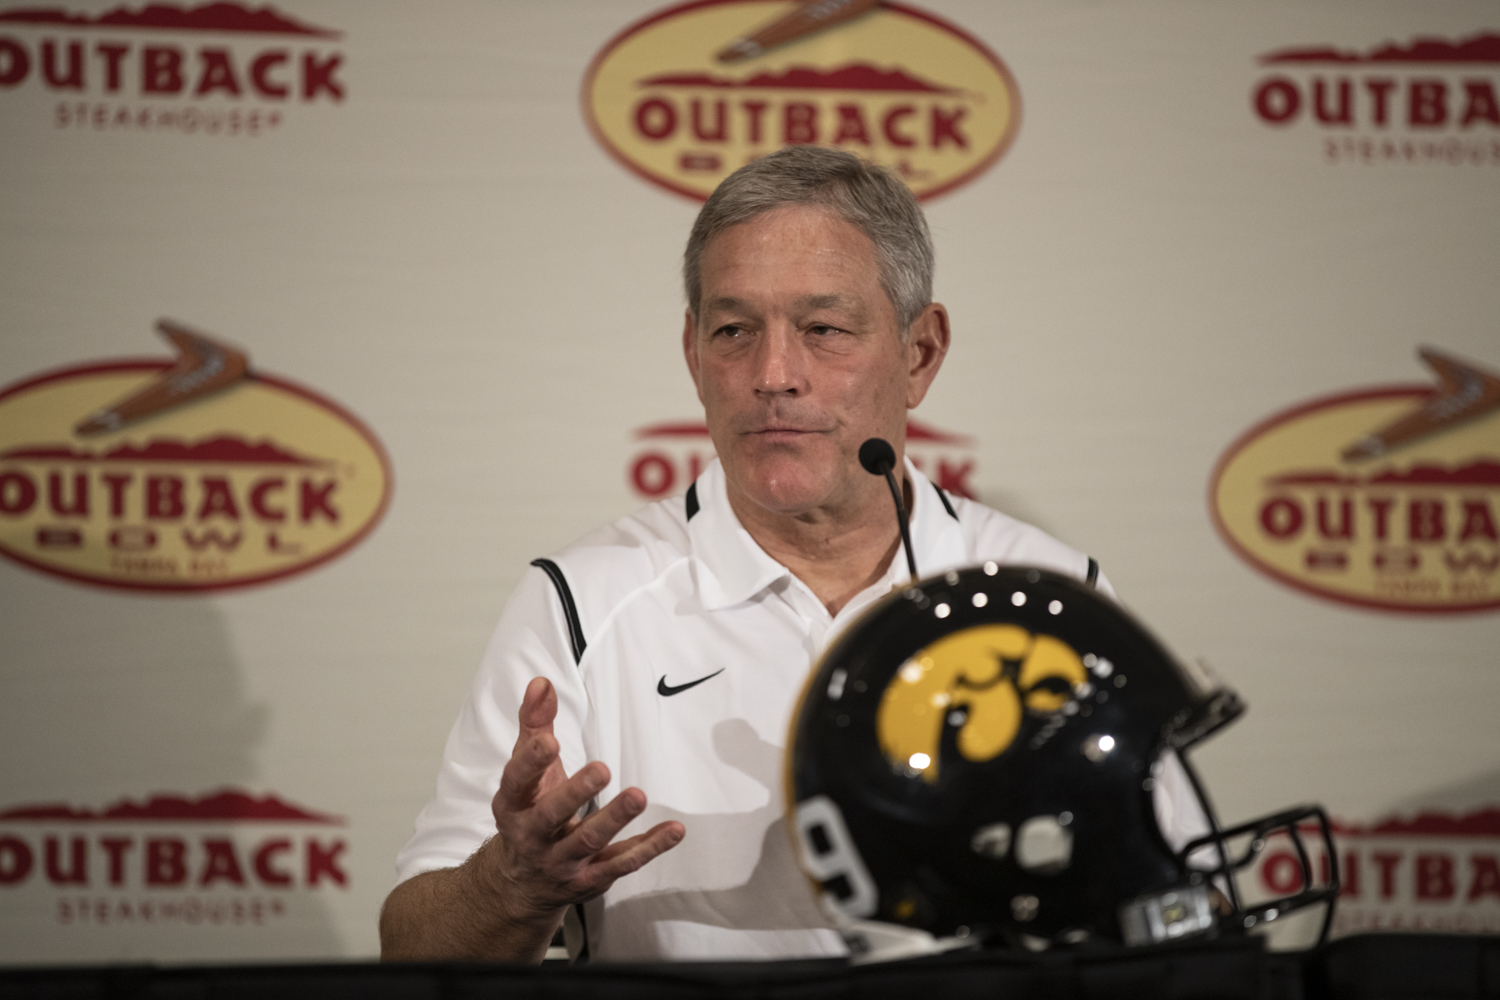 Iowa head coach Kirk Ferentz answers a question during a press conference  in Tampa, Florida on Saturday, December 29, 2018.